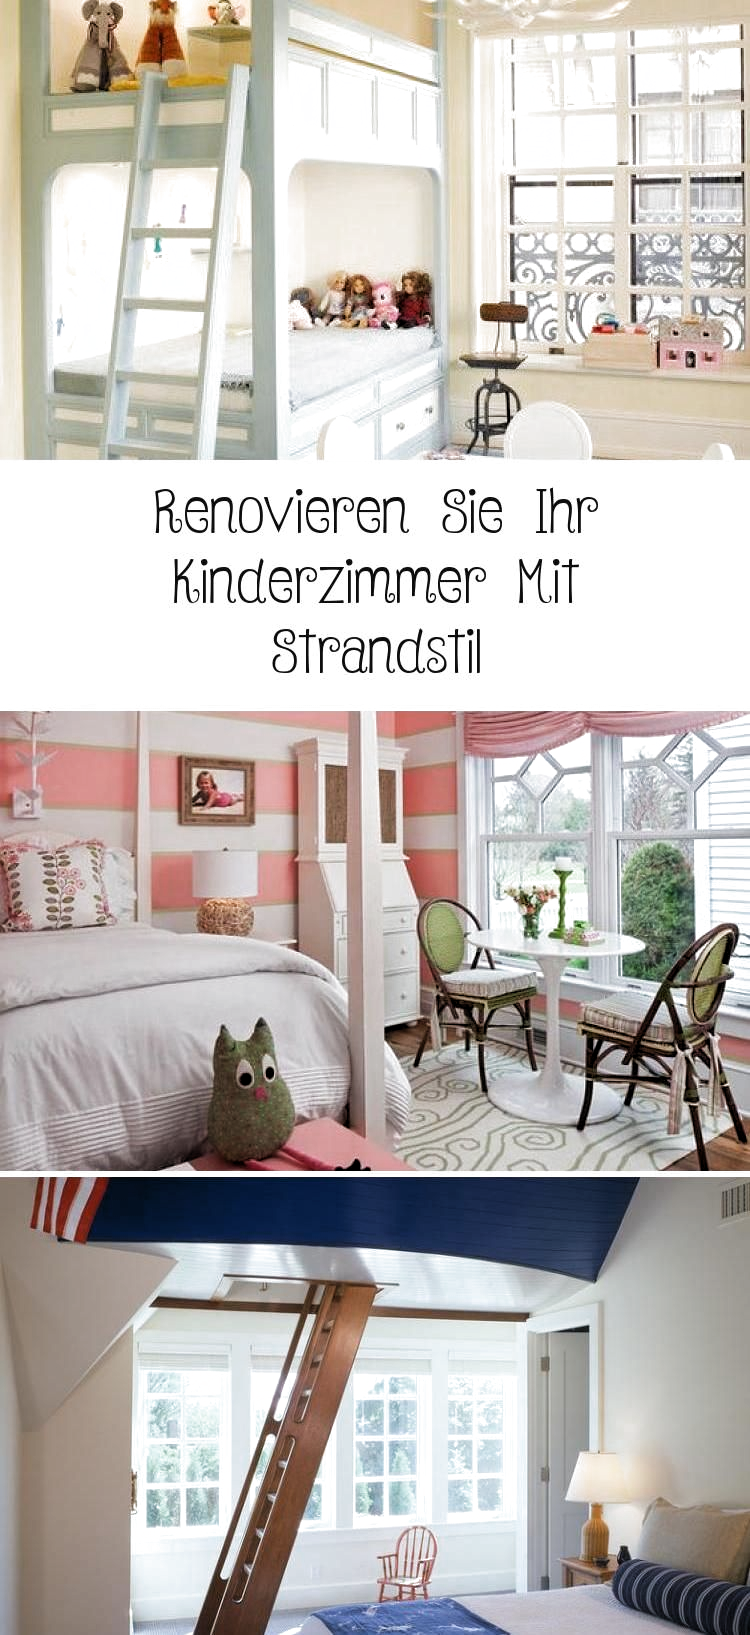 Renovate your child's room with beach style #children's room #renovate #stran ...   - Renovieren   #Renovierenvorhernachher  #Renovierenideen